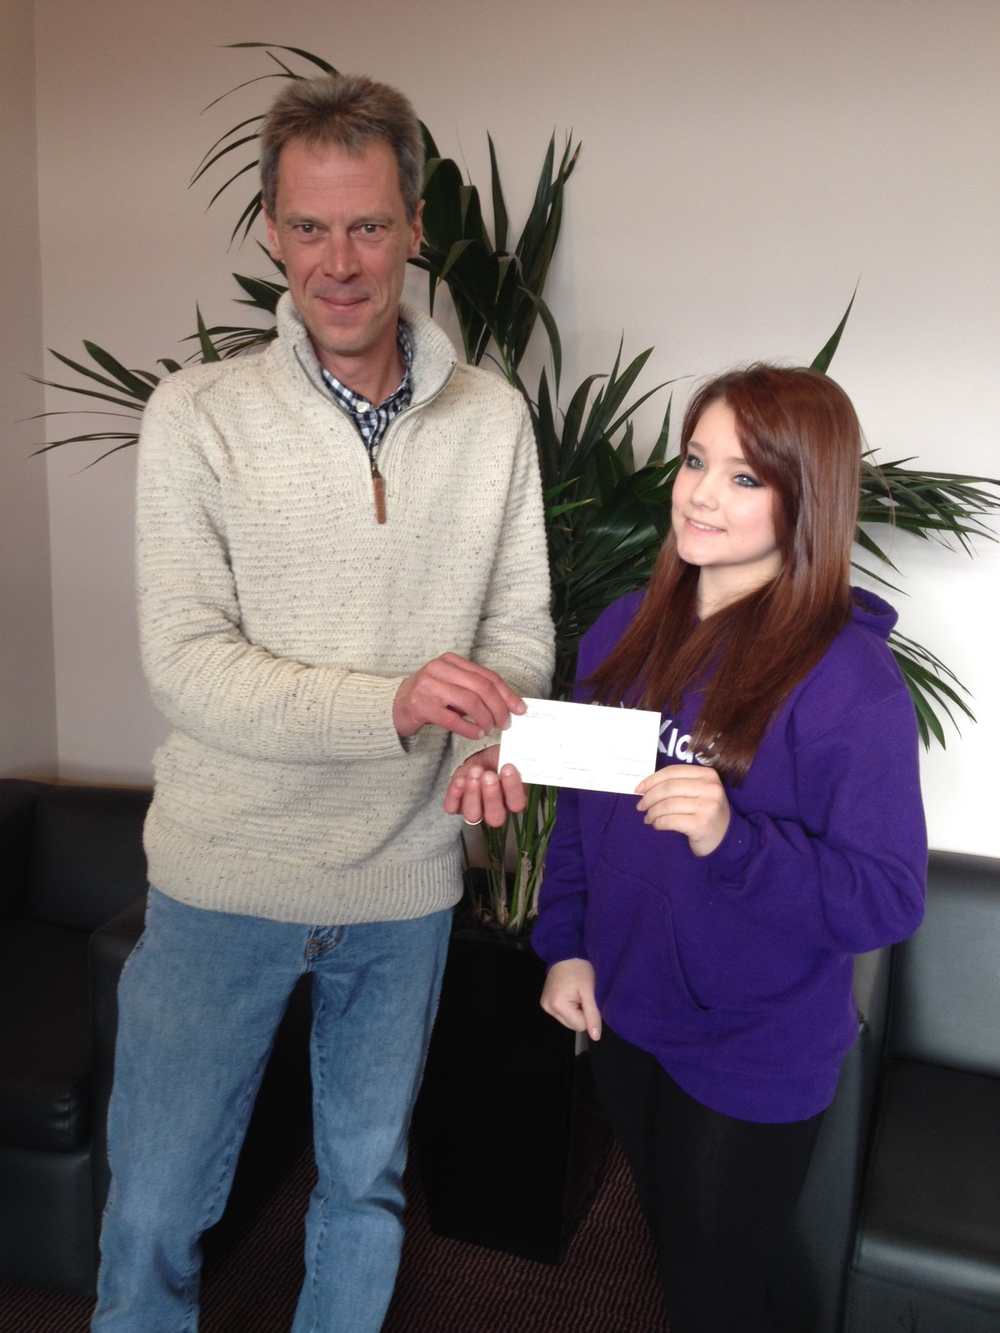 John receiving the cheque from Nicole earlier today